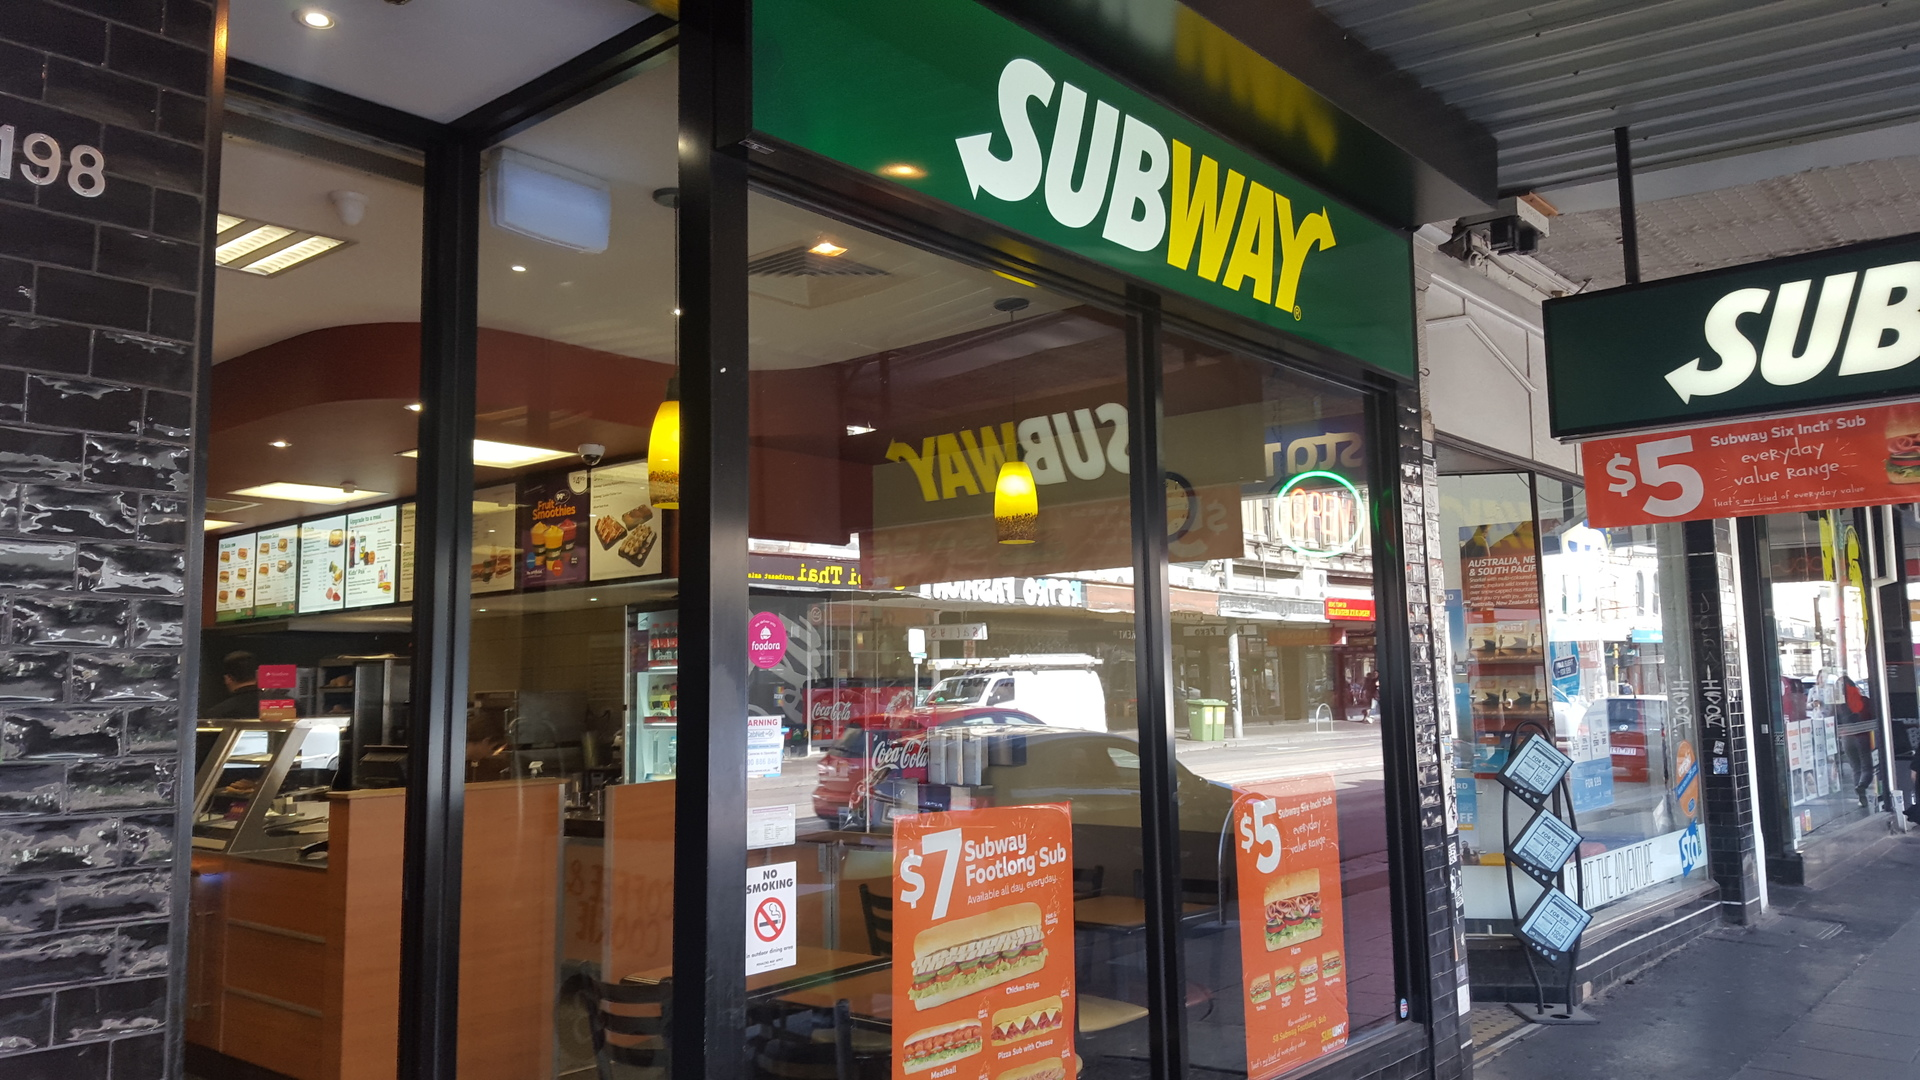 Inner City Subway Franchise for Sale Collingwood Melbourne